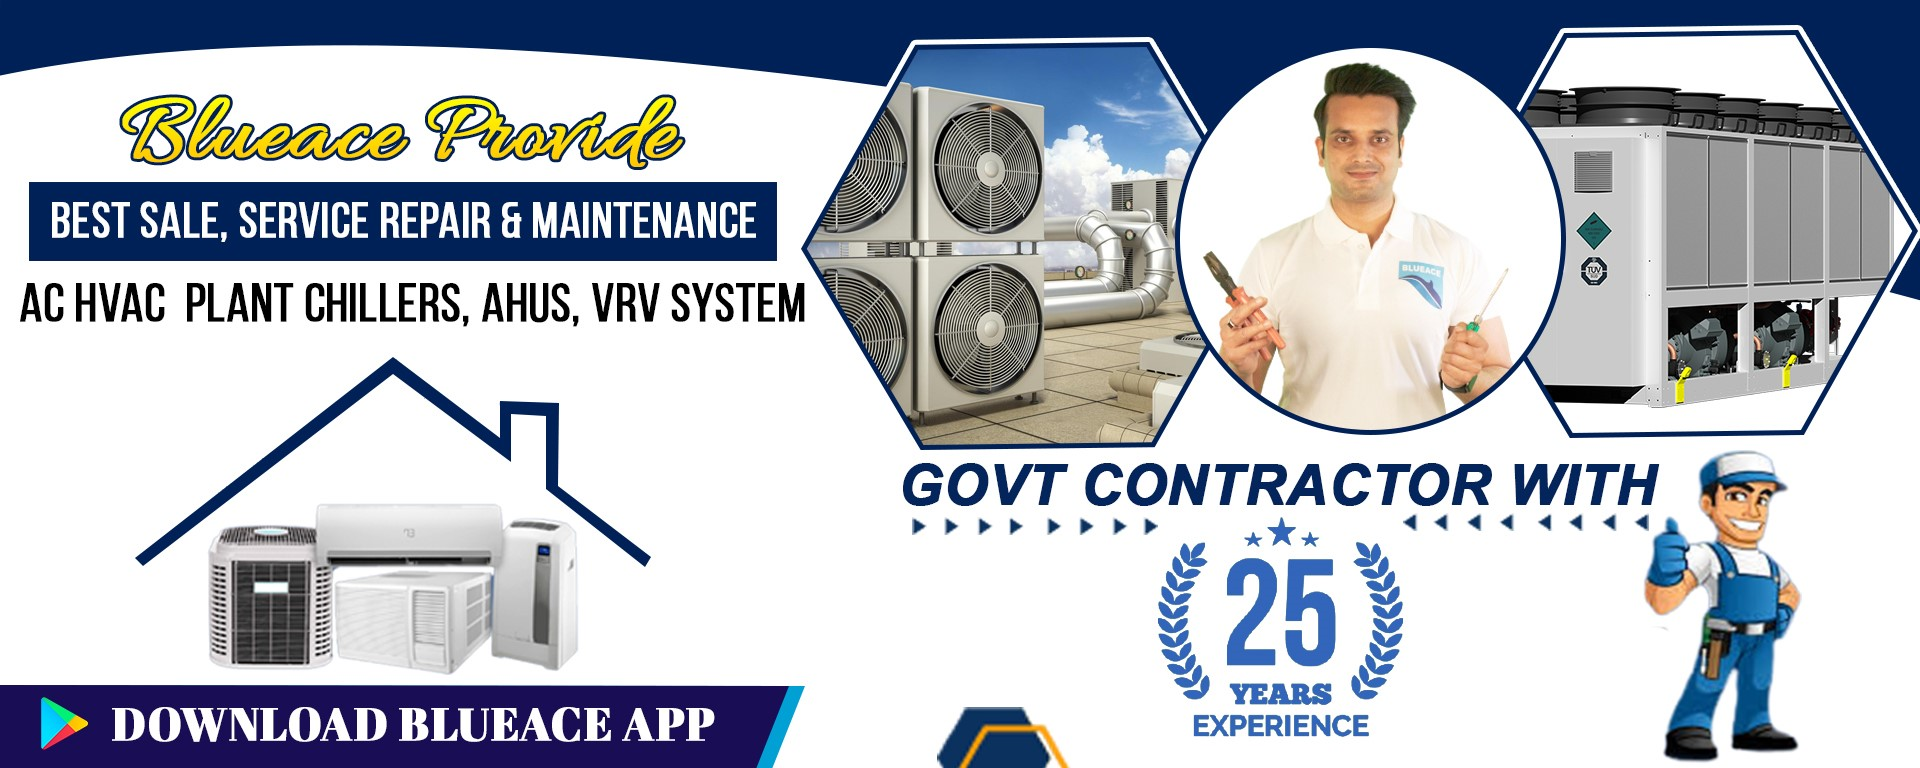 Blueace Commercial Air conditioners